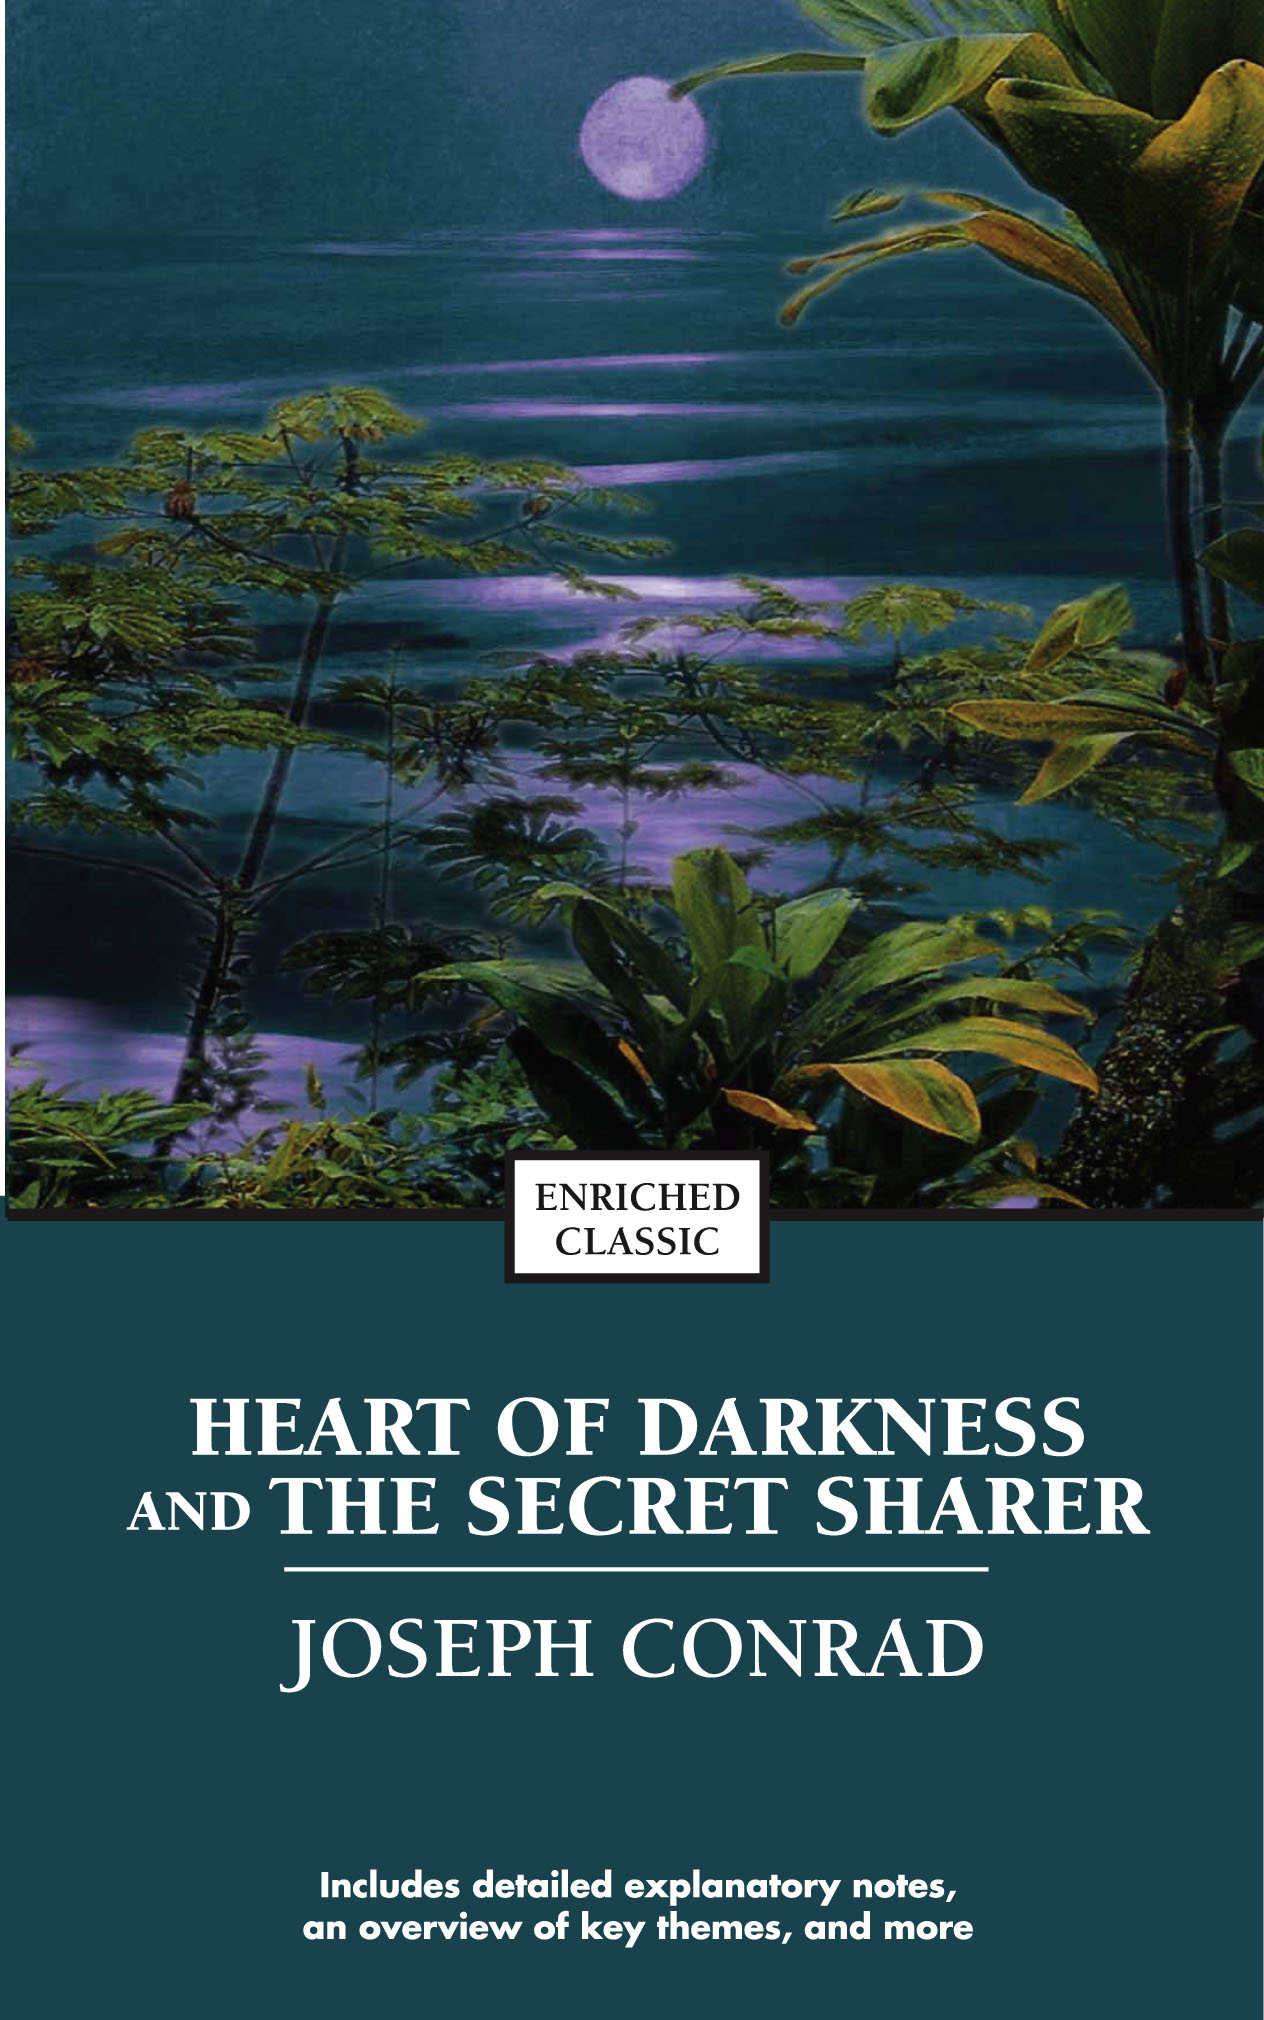 an analysis of truth in heart of darkness by joseph conrad Joseph conrad's heart of darkness is both an adventure story as he is unable to tell the truth and instead lies about the way kurtz lived in the heart of the.